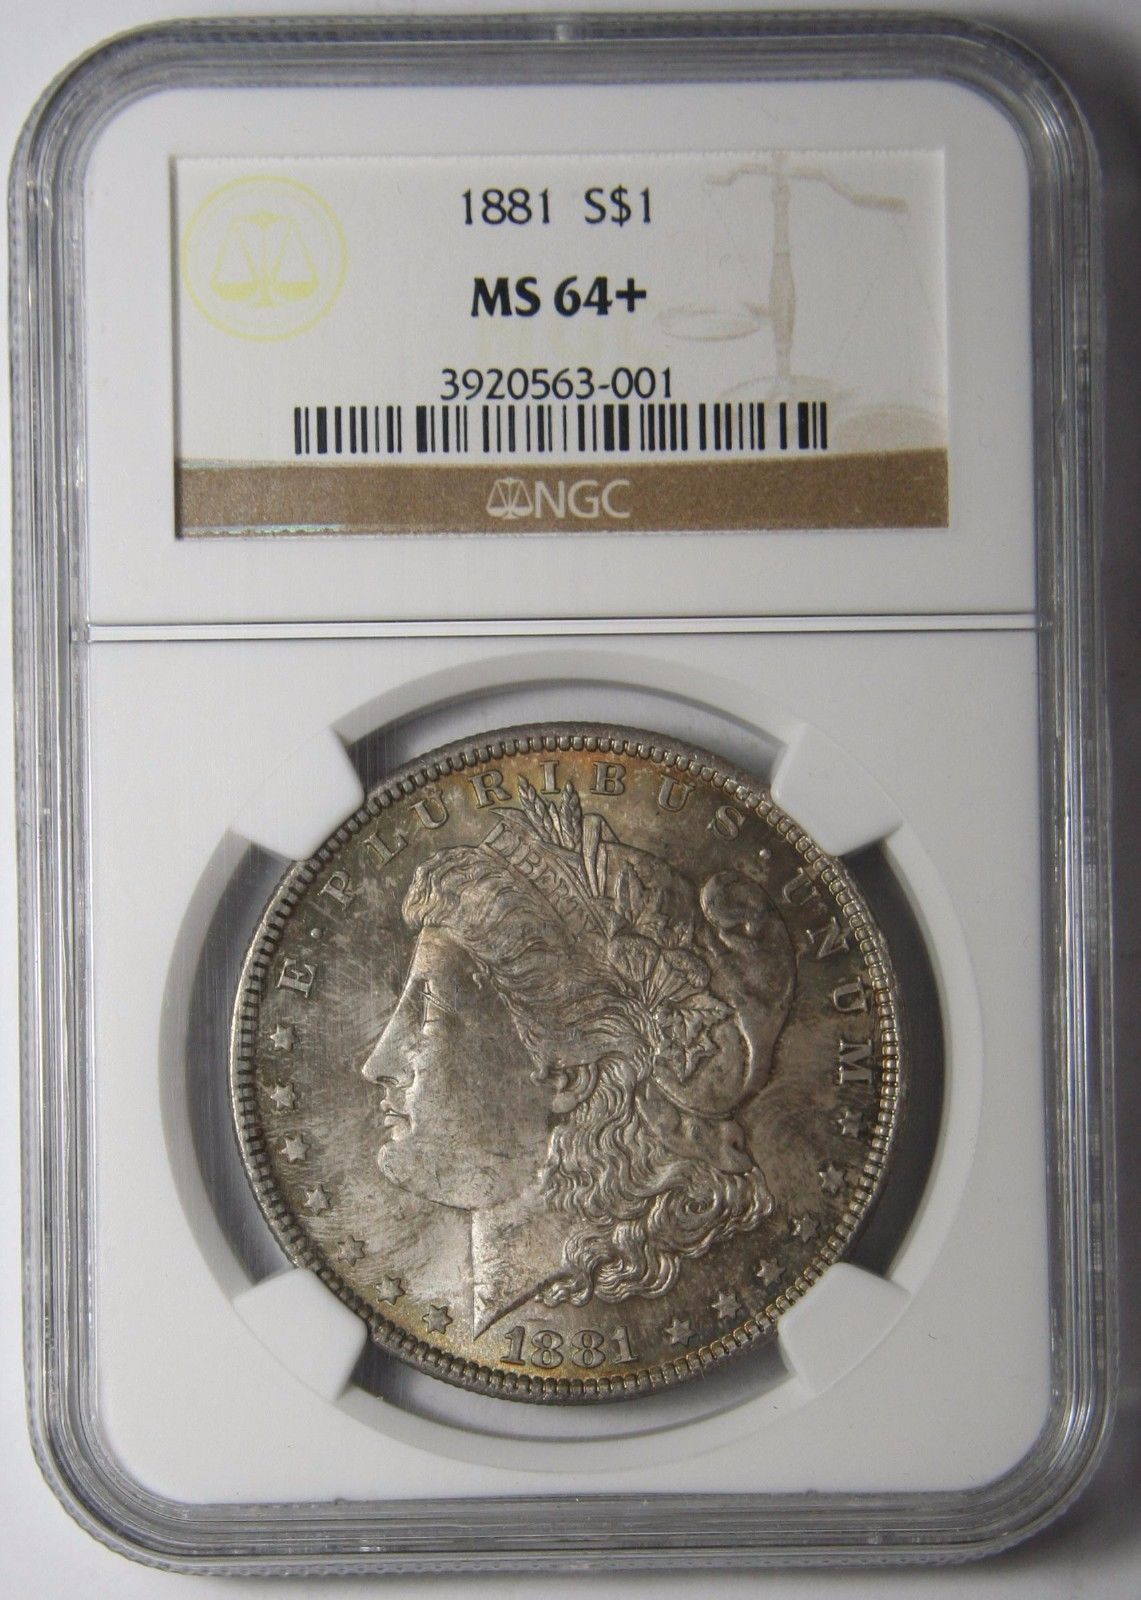 1881 MORGAN SILVER MS64+ DOLLAR NGC MS 64+ COIN Lot SR 631